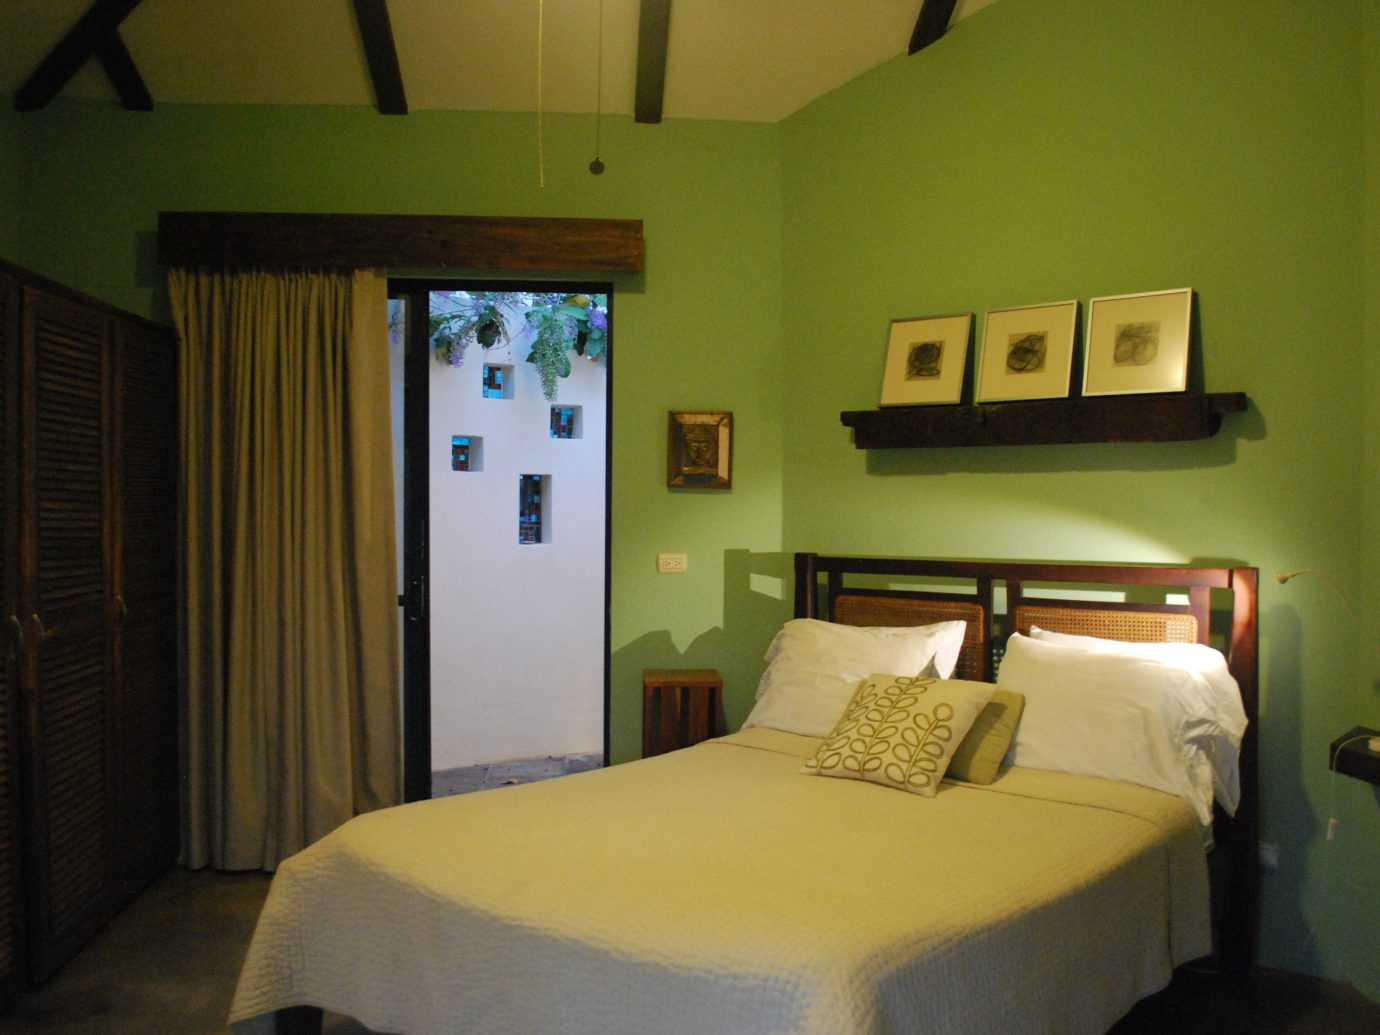 Bedroom at Casa Frangipani in Costa Rica